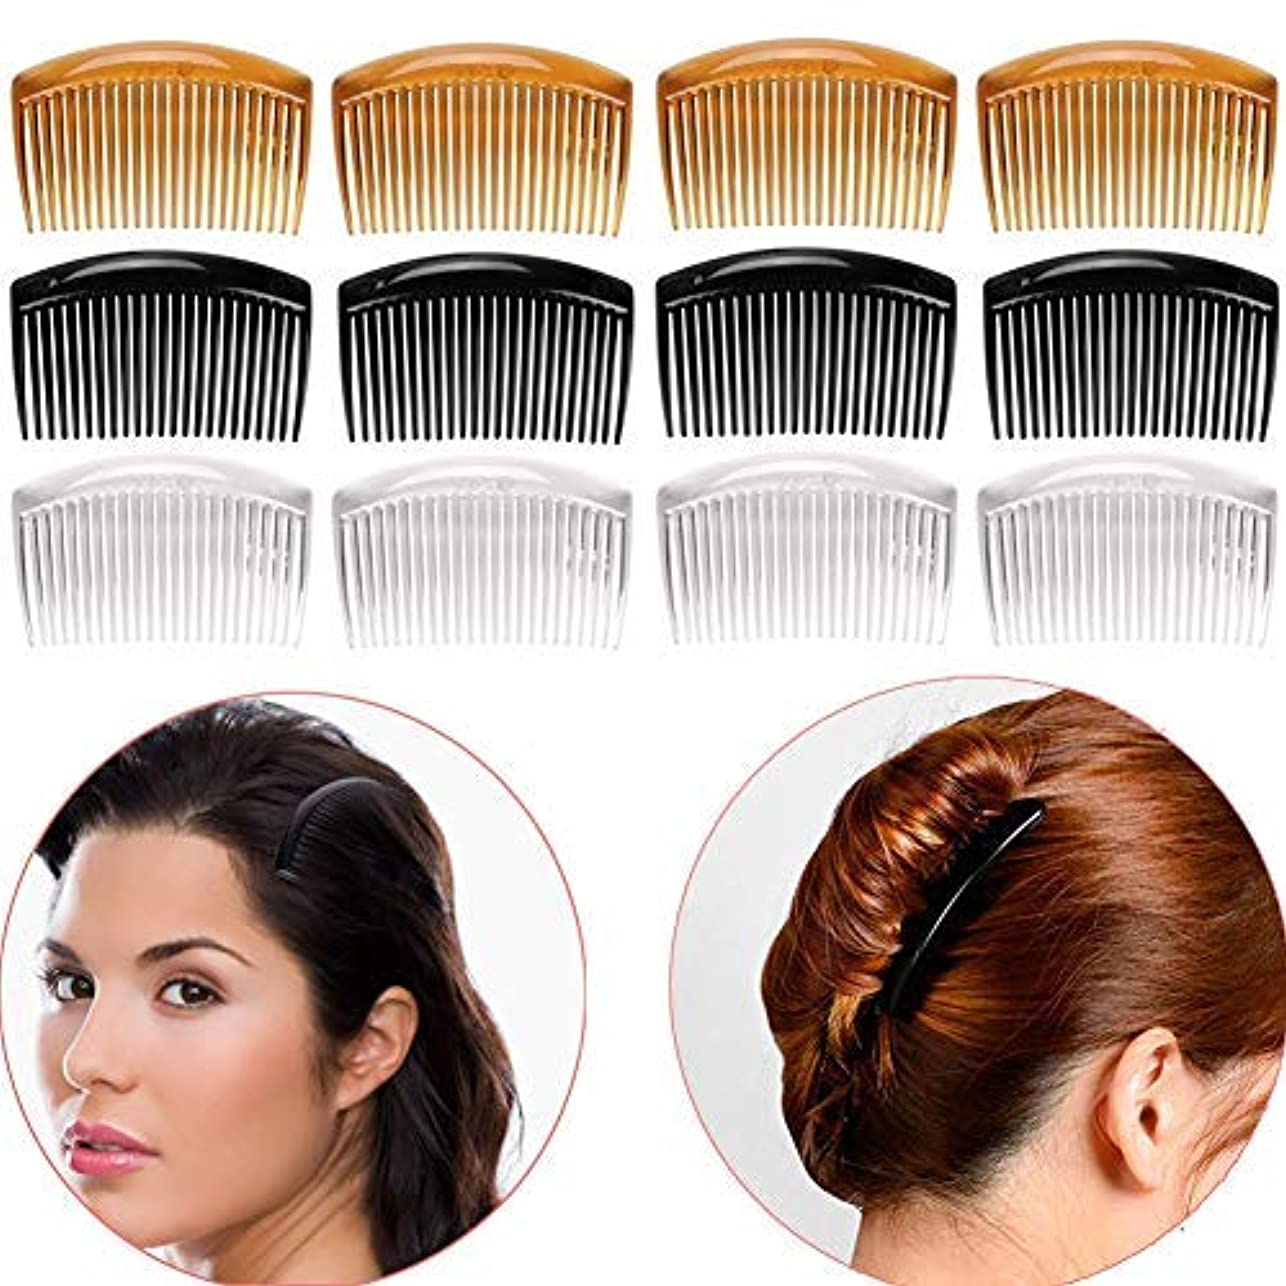 レオナルドダサイレント選ぶLuckycivia 12Pcs French Twist Comb, Plastic Side Hair Combs with 23 Teeth, Strong Hold No Slip Grip and Durable...